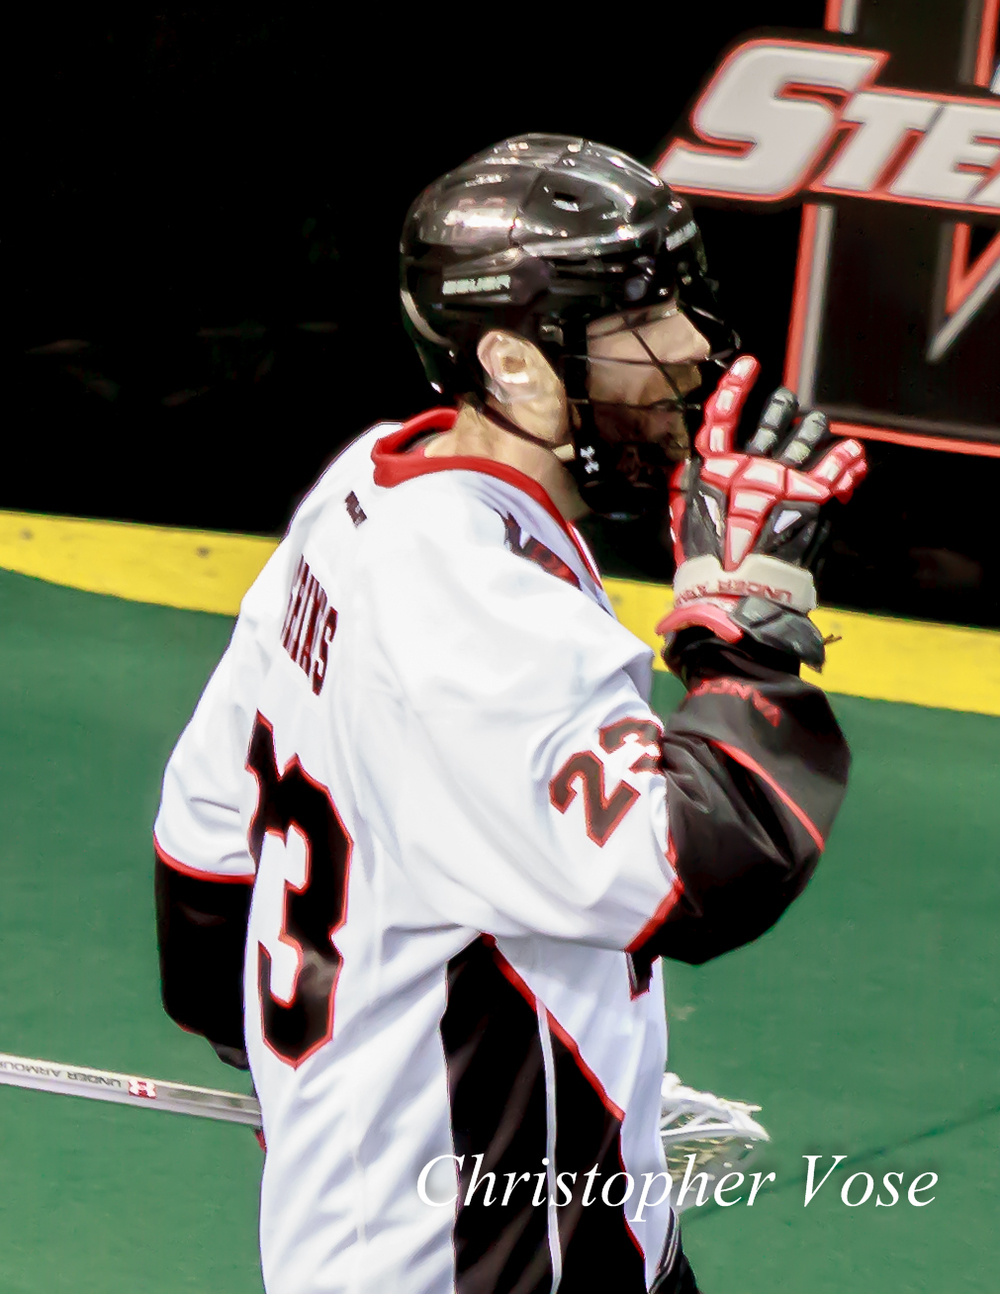 2014-01-11 Mike Grimes Goal Celebration.jpg